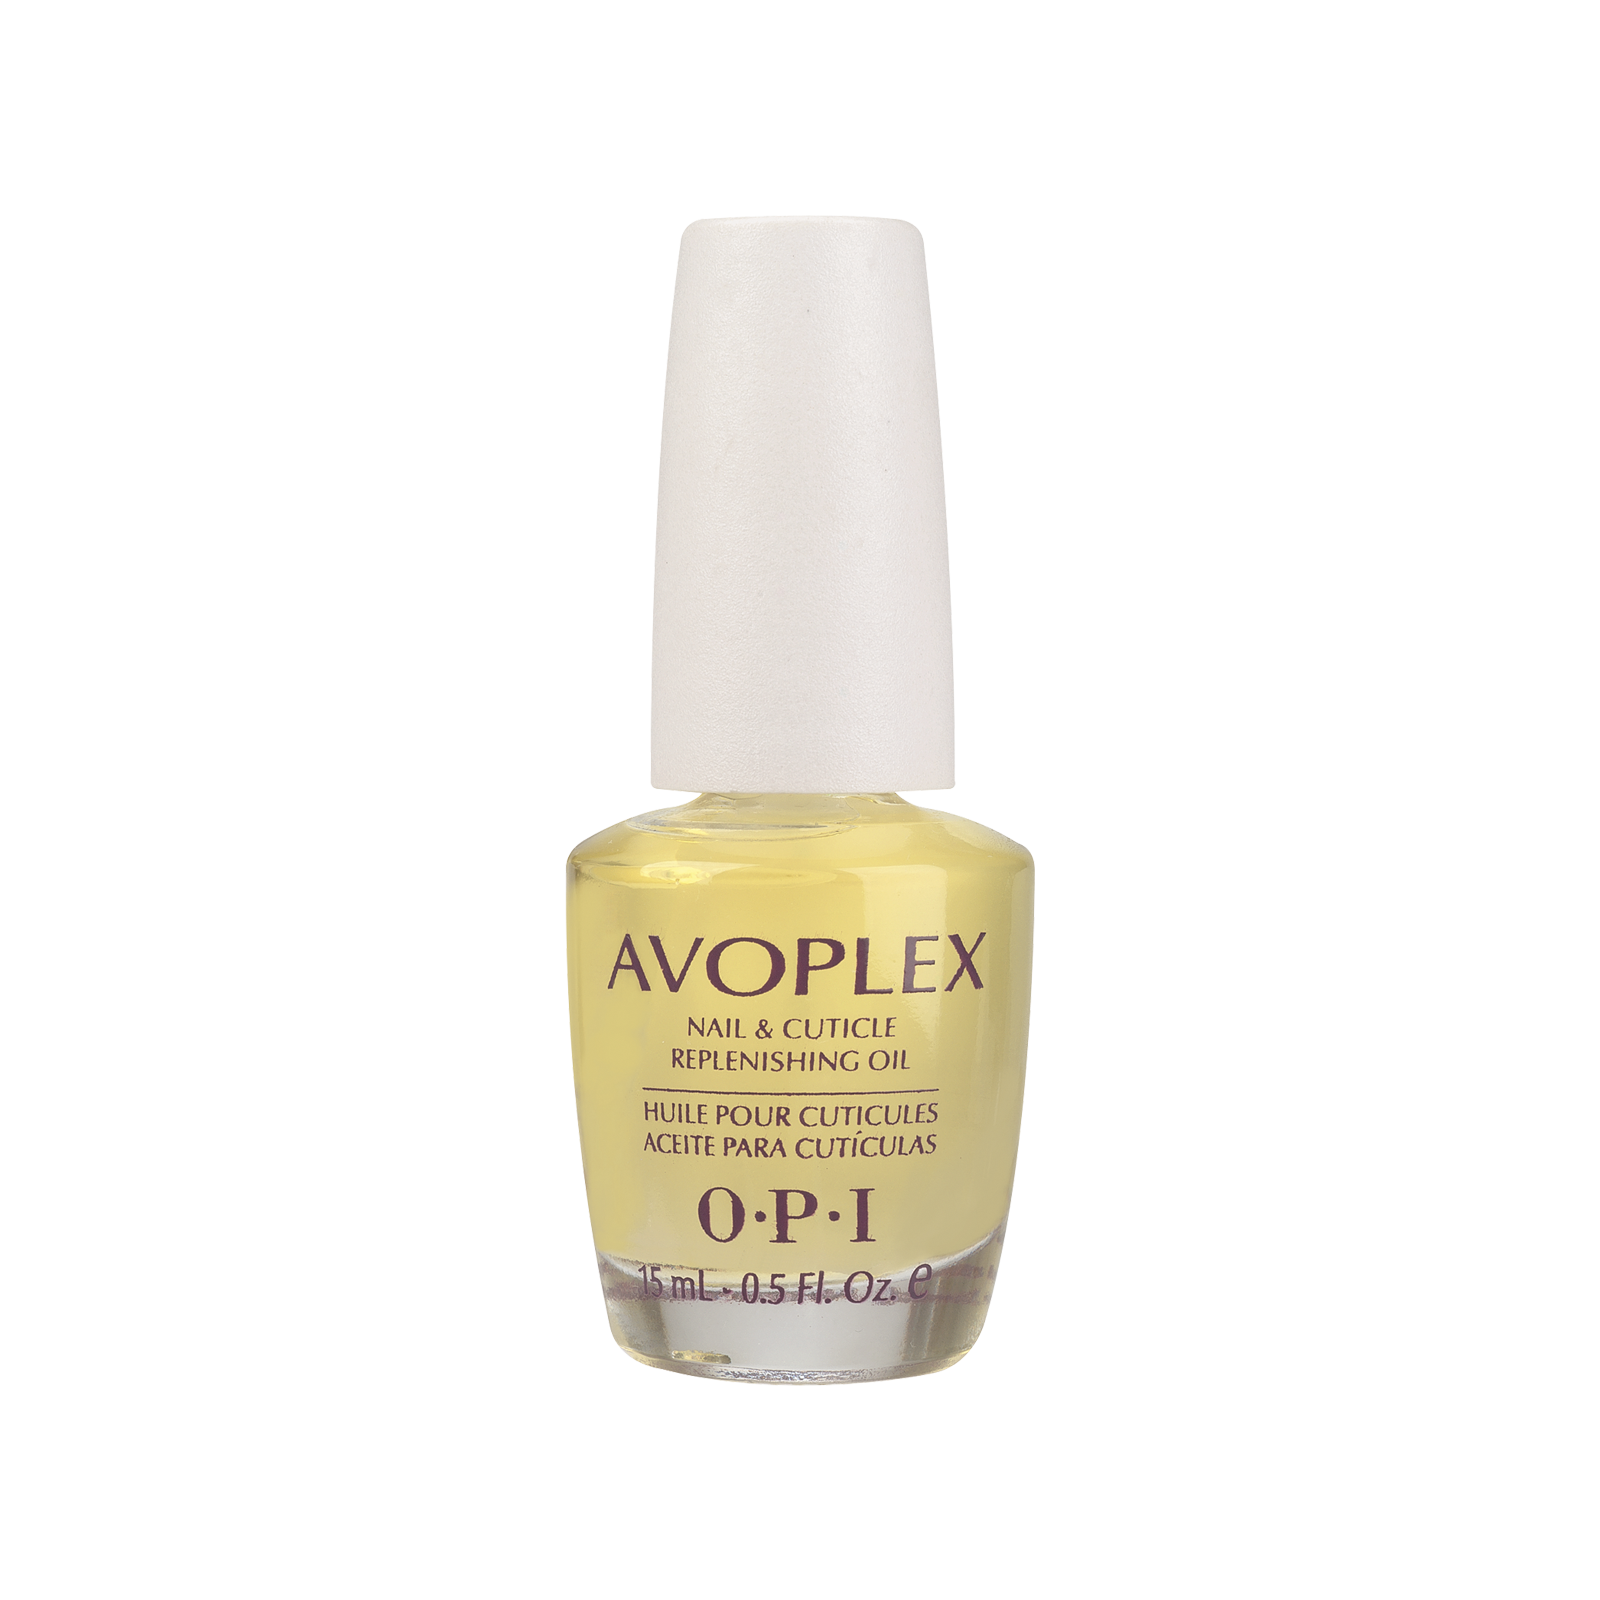 Nail & Cuticle Replenishing Oil - OPI | CosmoProf